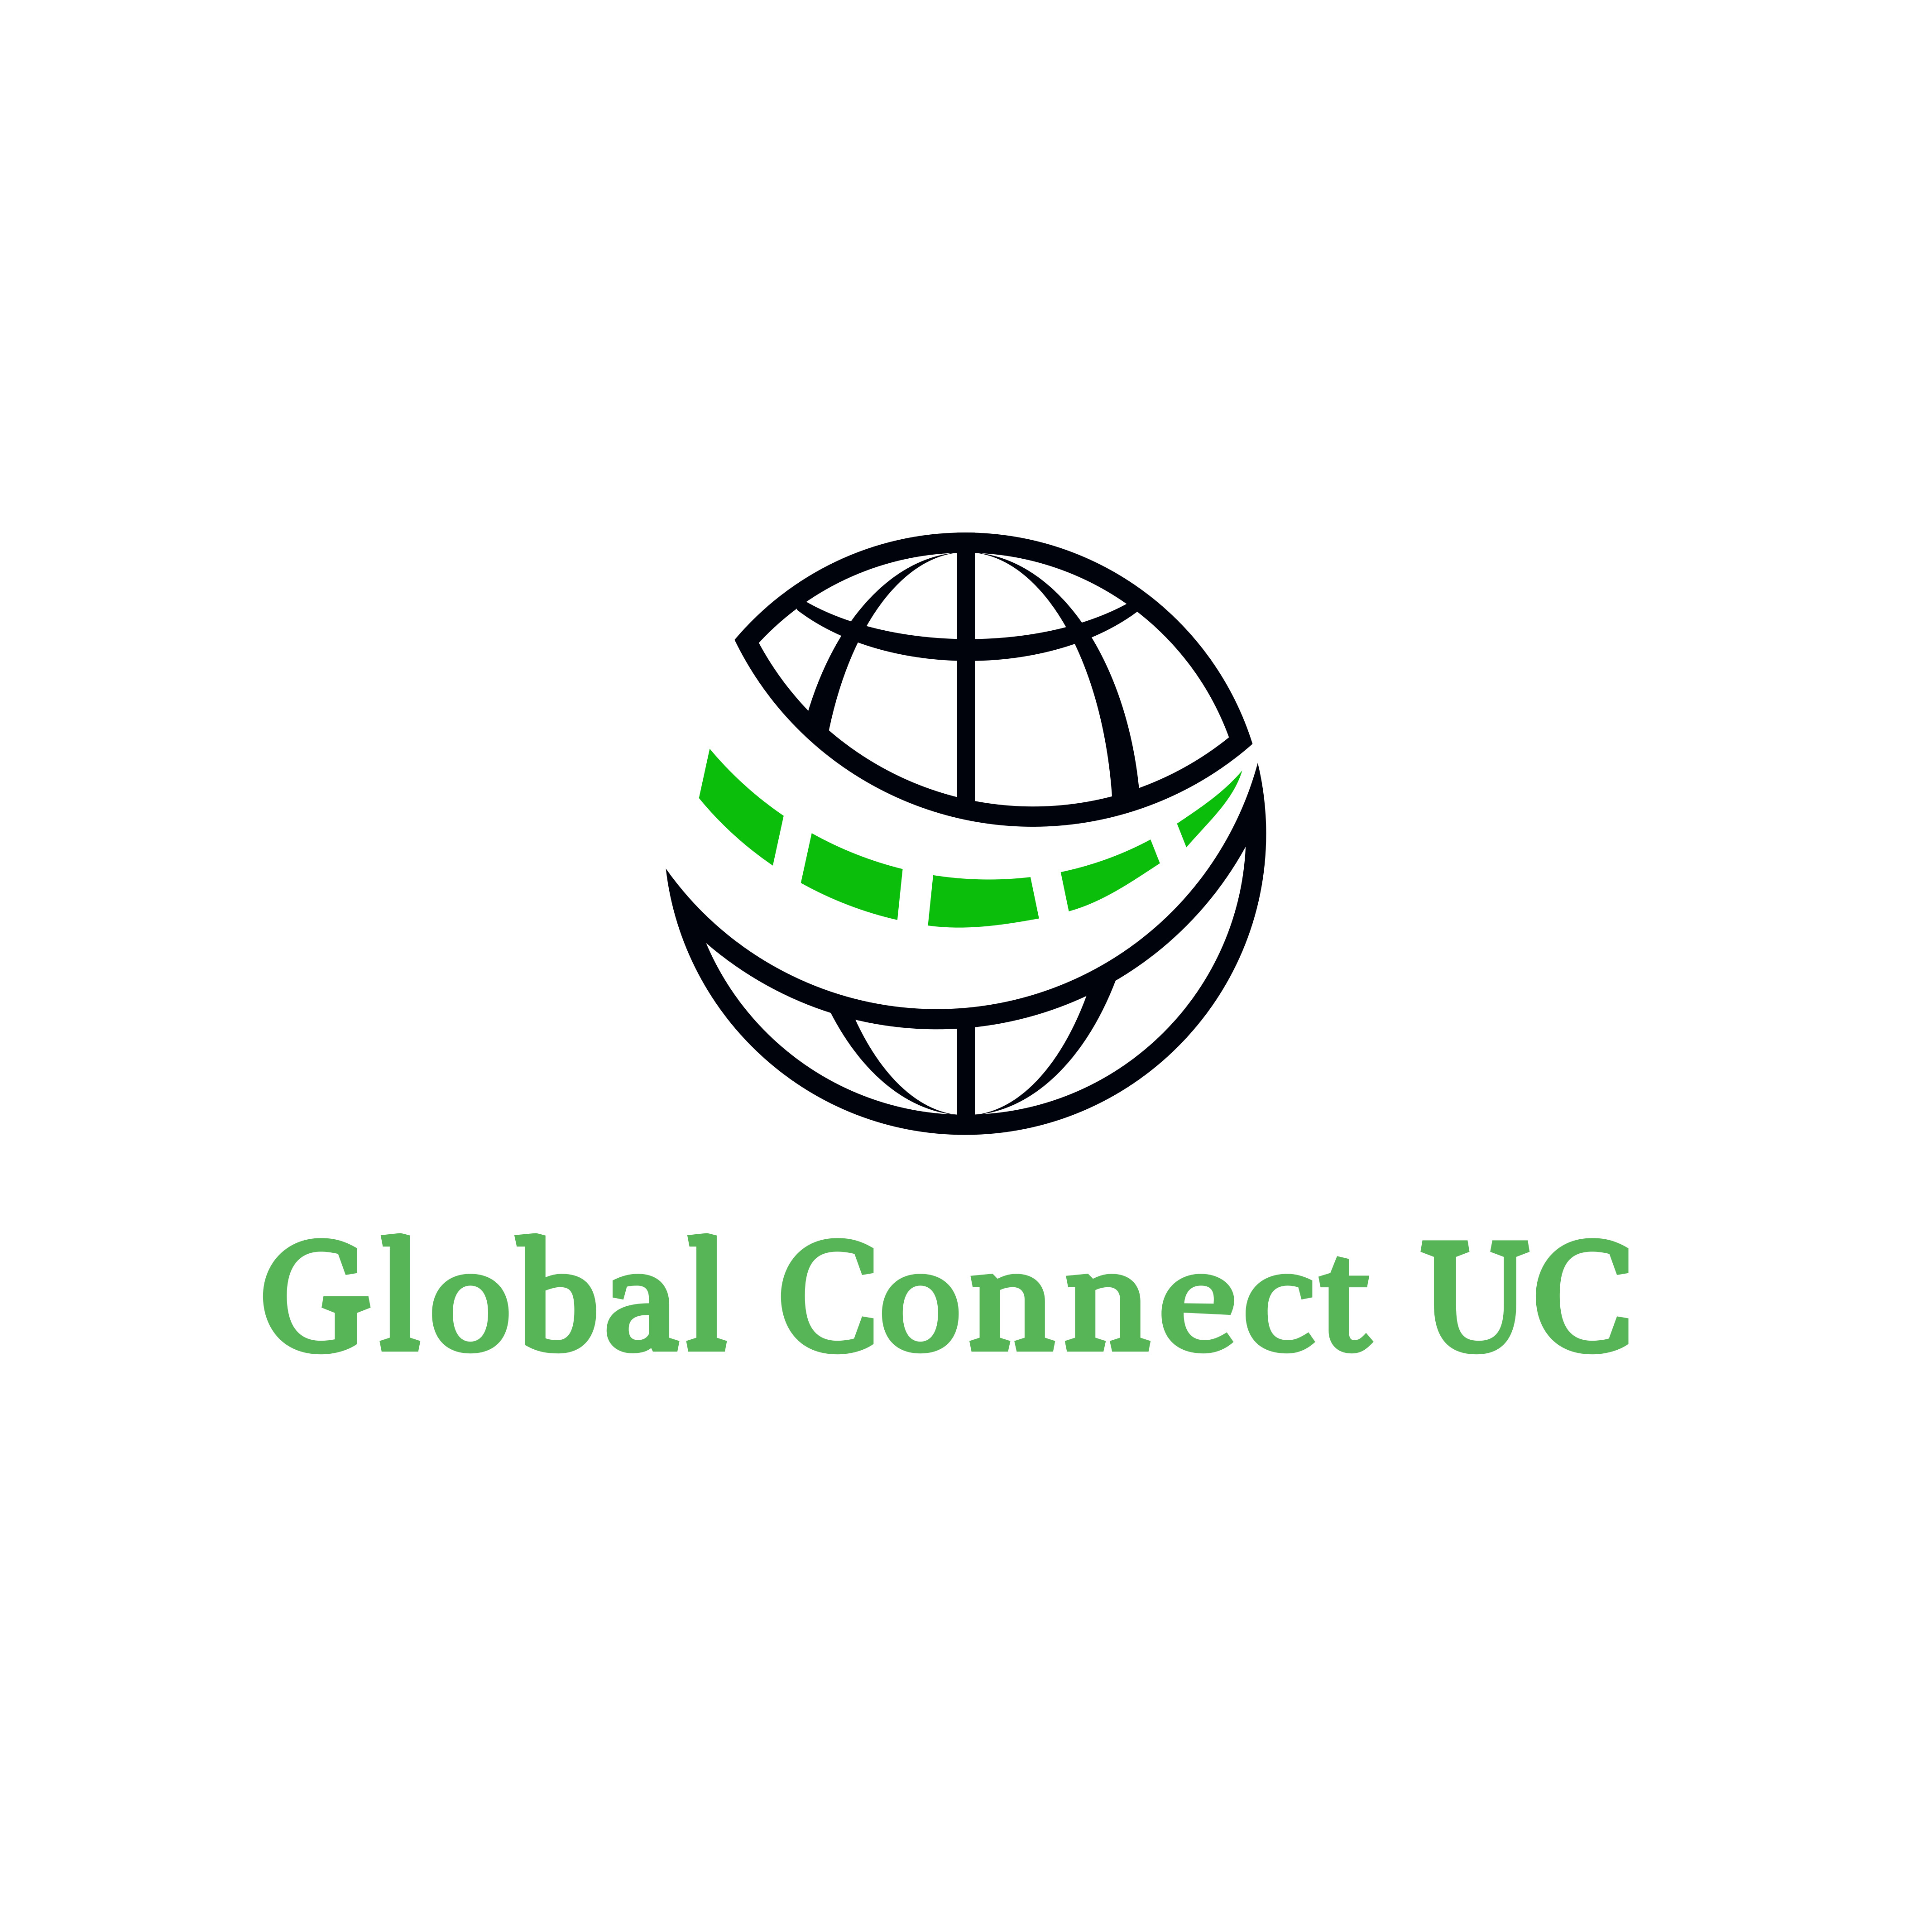 Global Connect UC Limited